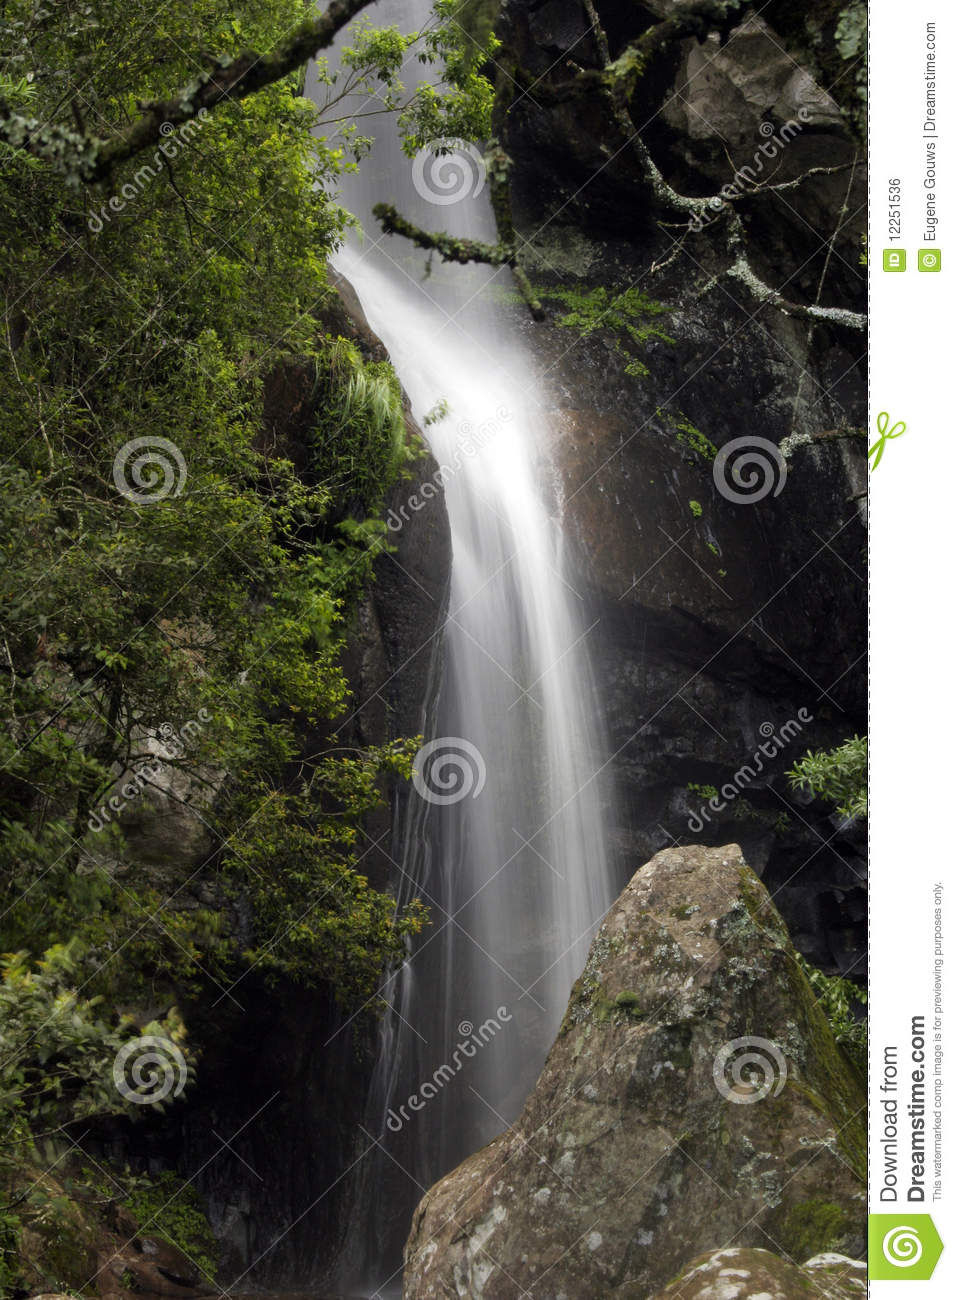 Crystal falls royalty free stock image image 12251536 for Crystal falls